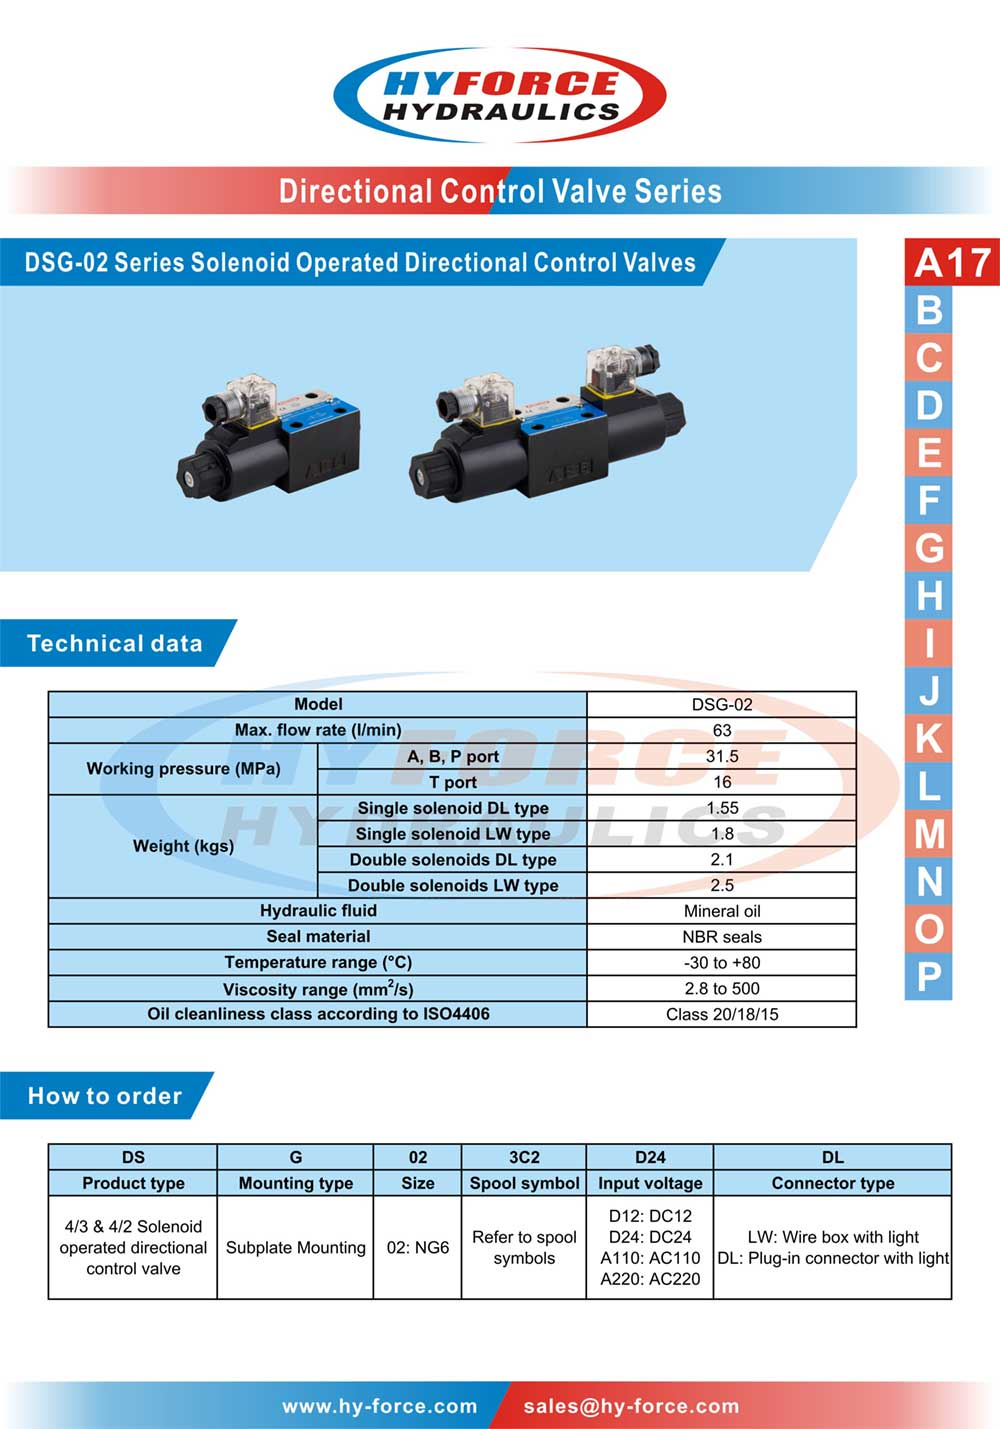 Dsg 02 series solenoid operated directional control valves buy technical data how to order spool symbols dimensions nvjuhfo Choice Image